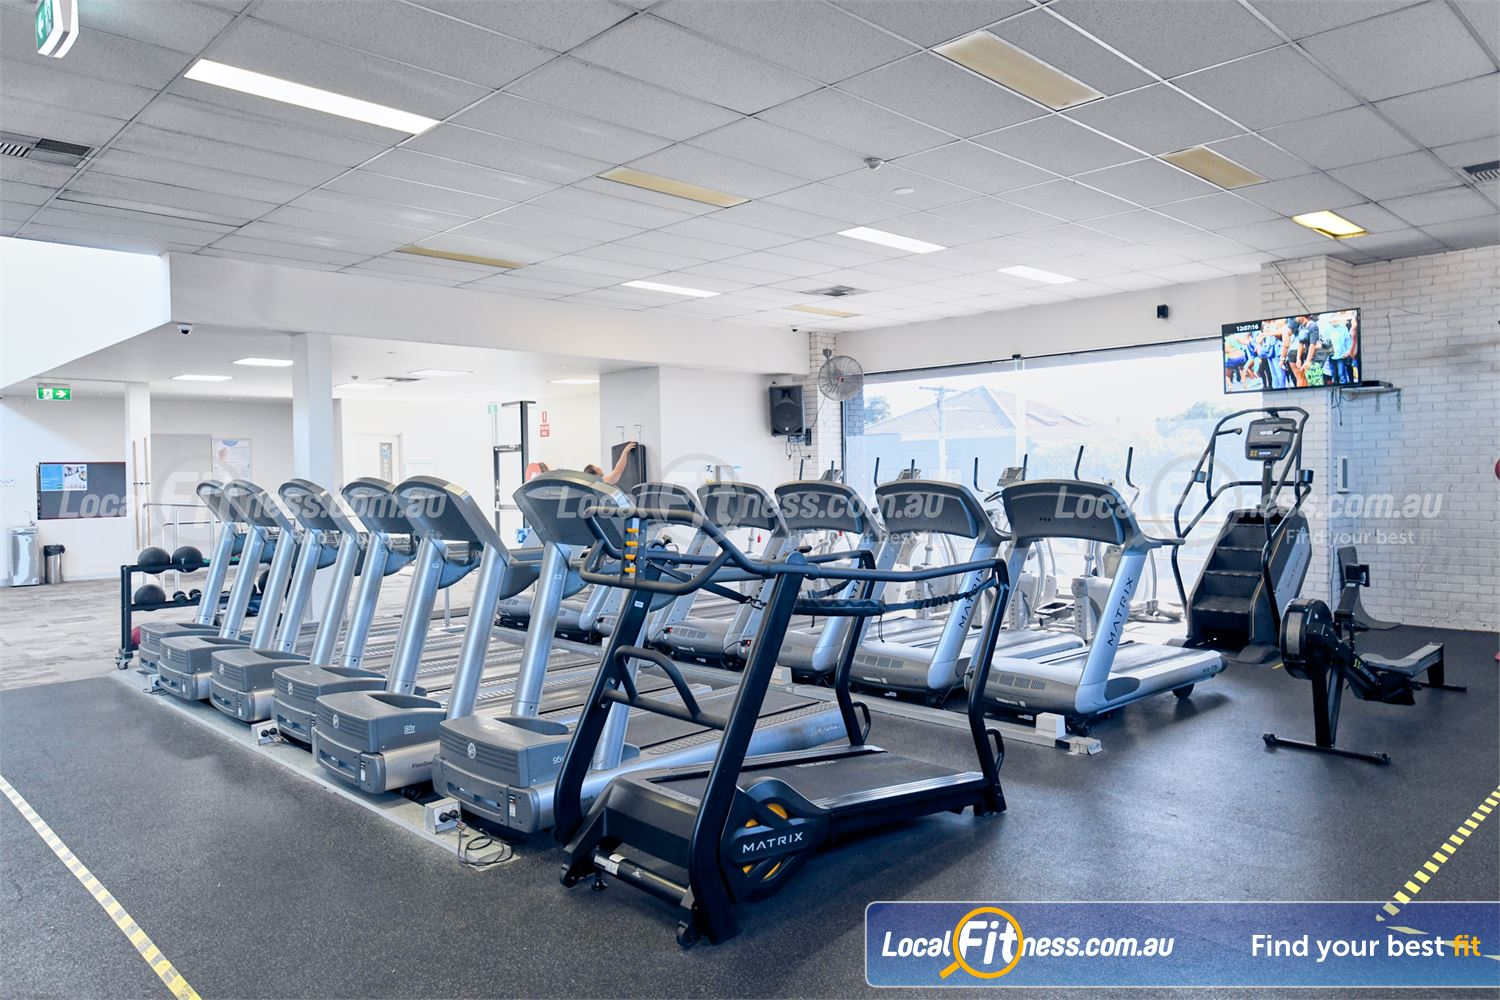 Goodlife Health Clubs Glen Iris Our Glen Iris gym includes rows of treadmills so you don't have to wait.